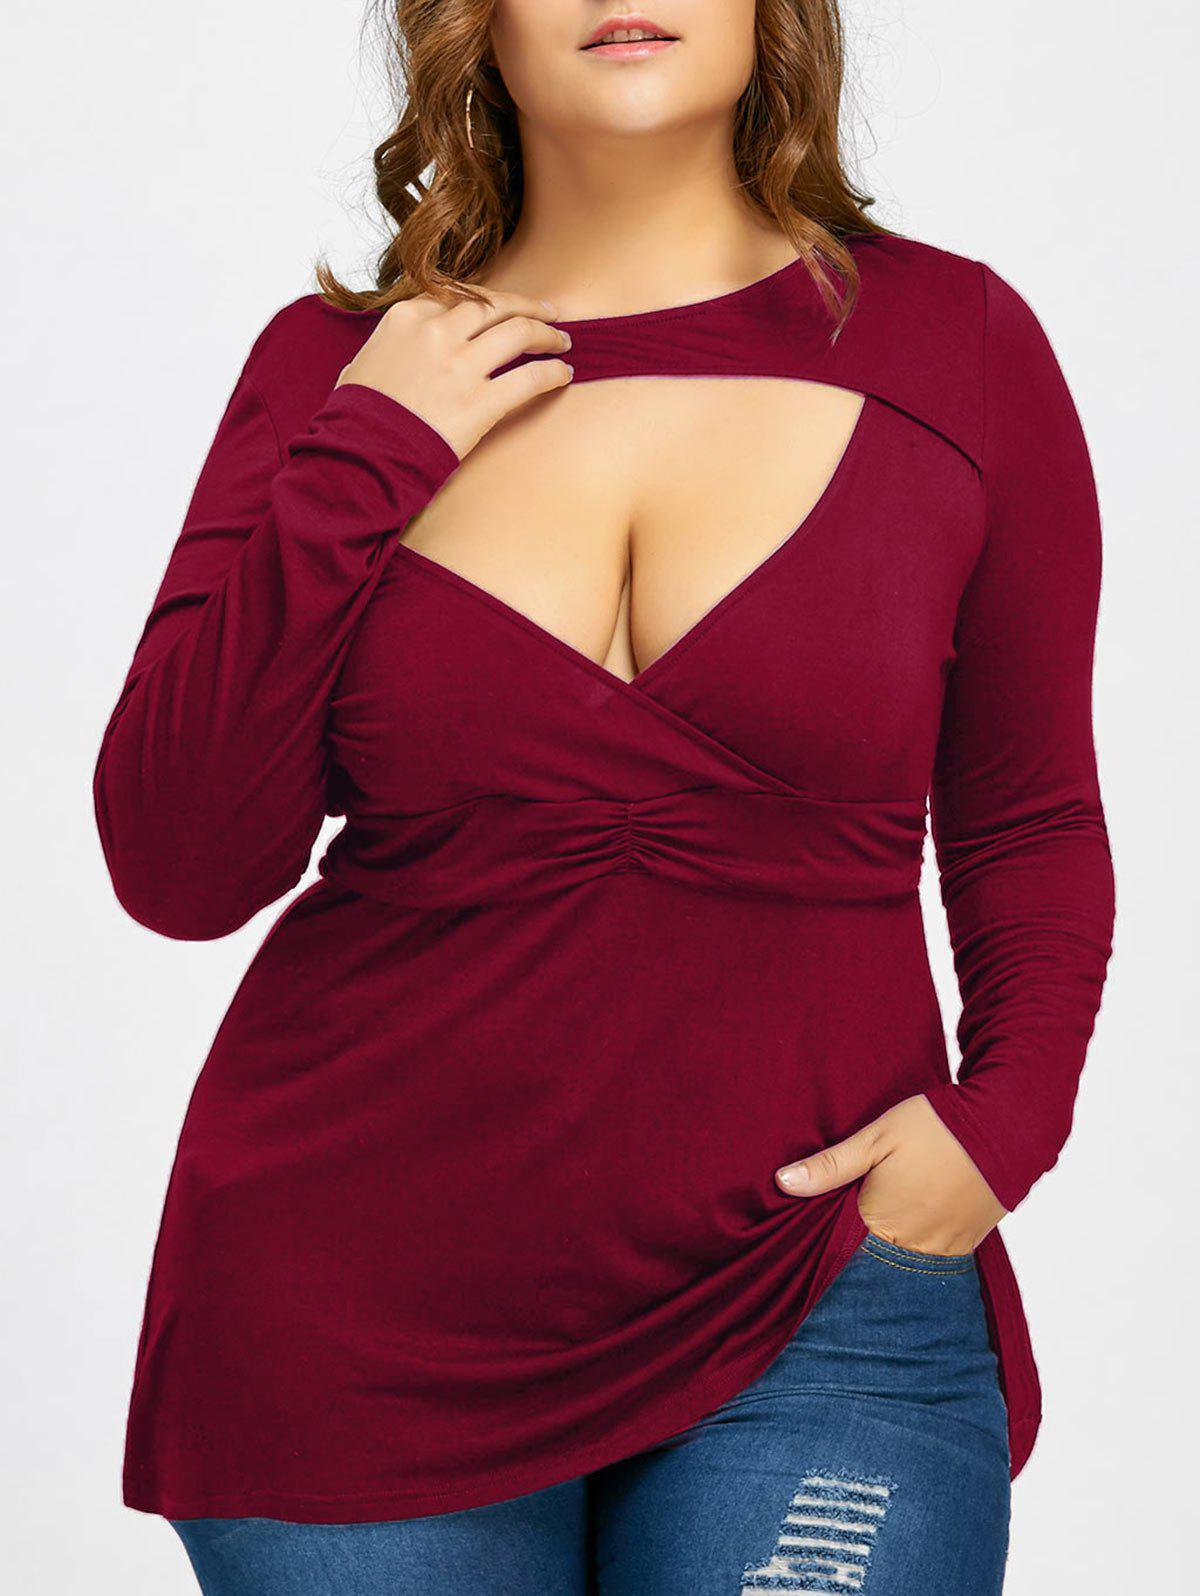 Empire Waist Plus Size Low Cut T-shirtWOMEN<br><br>Size: 4XL; Color: WINE RED; Material: Cotton Blends,Spandex; Shirt Length: Long; Sleeve Length: Full; Collar: Crew Neck; Style: Fashion; Season: Fall,Spring; Pattern Type: Solid; Weight: 0.2970kg; Package Contents: 1 x T-shirt;